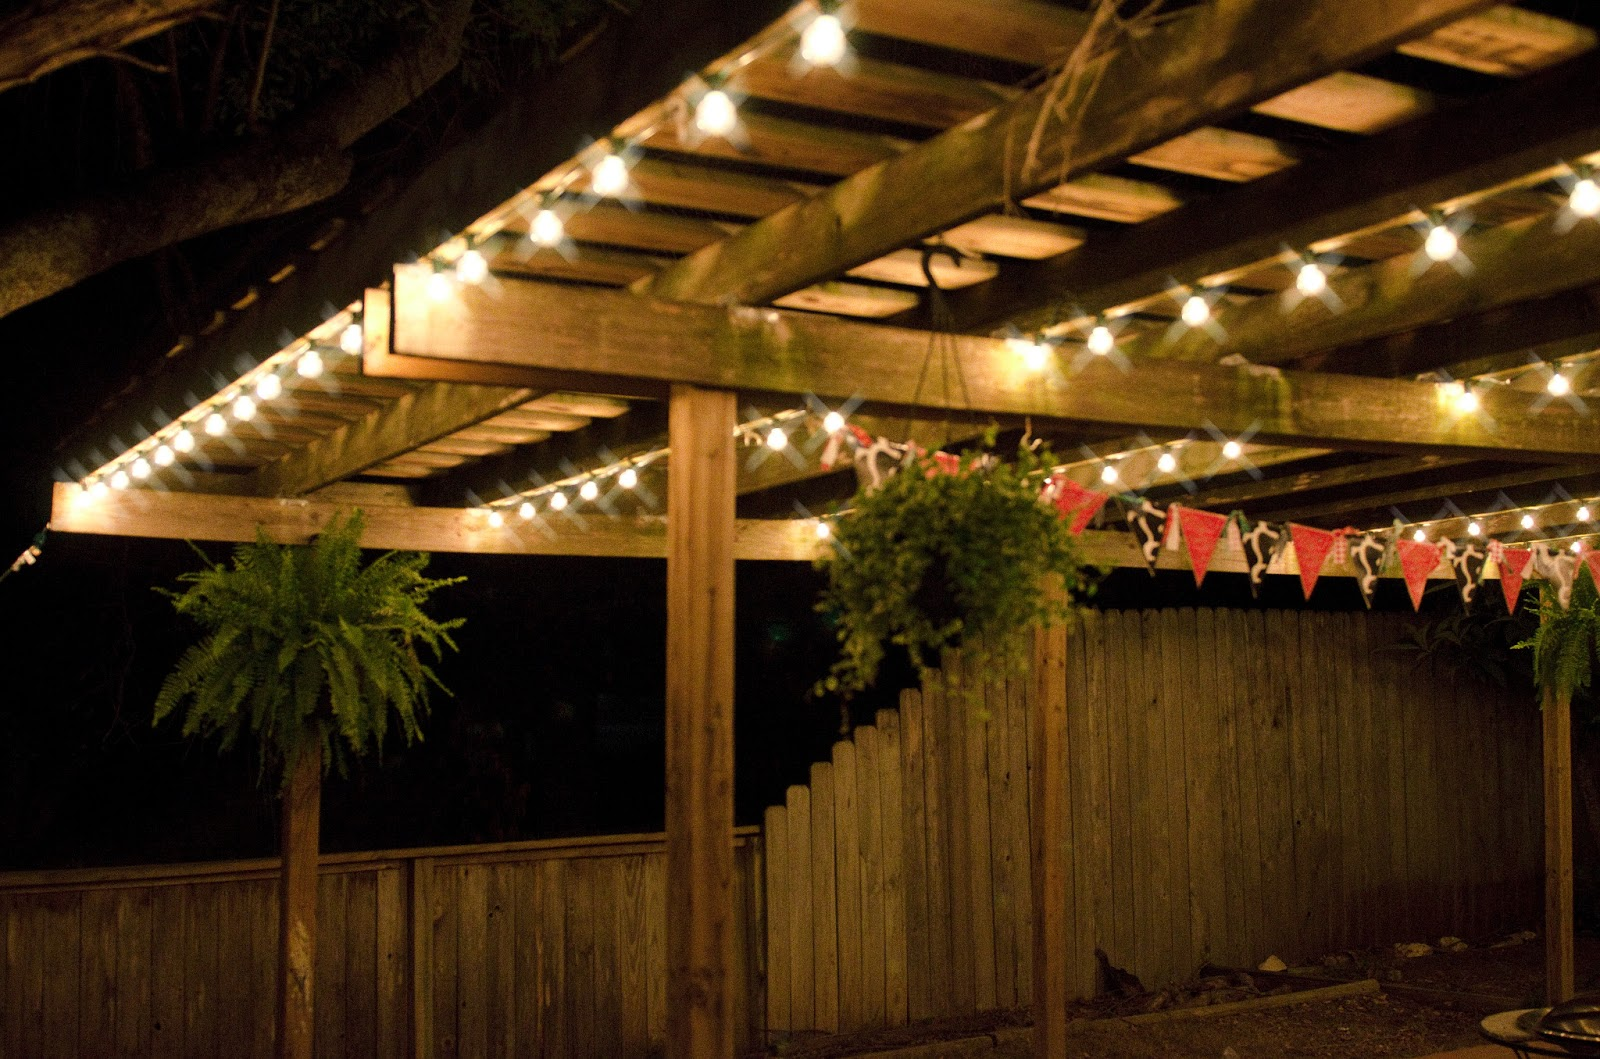 The Patio lights that can turn everything towards it